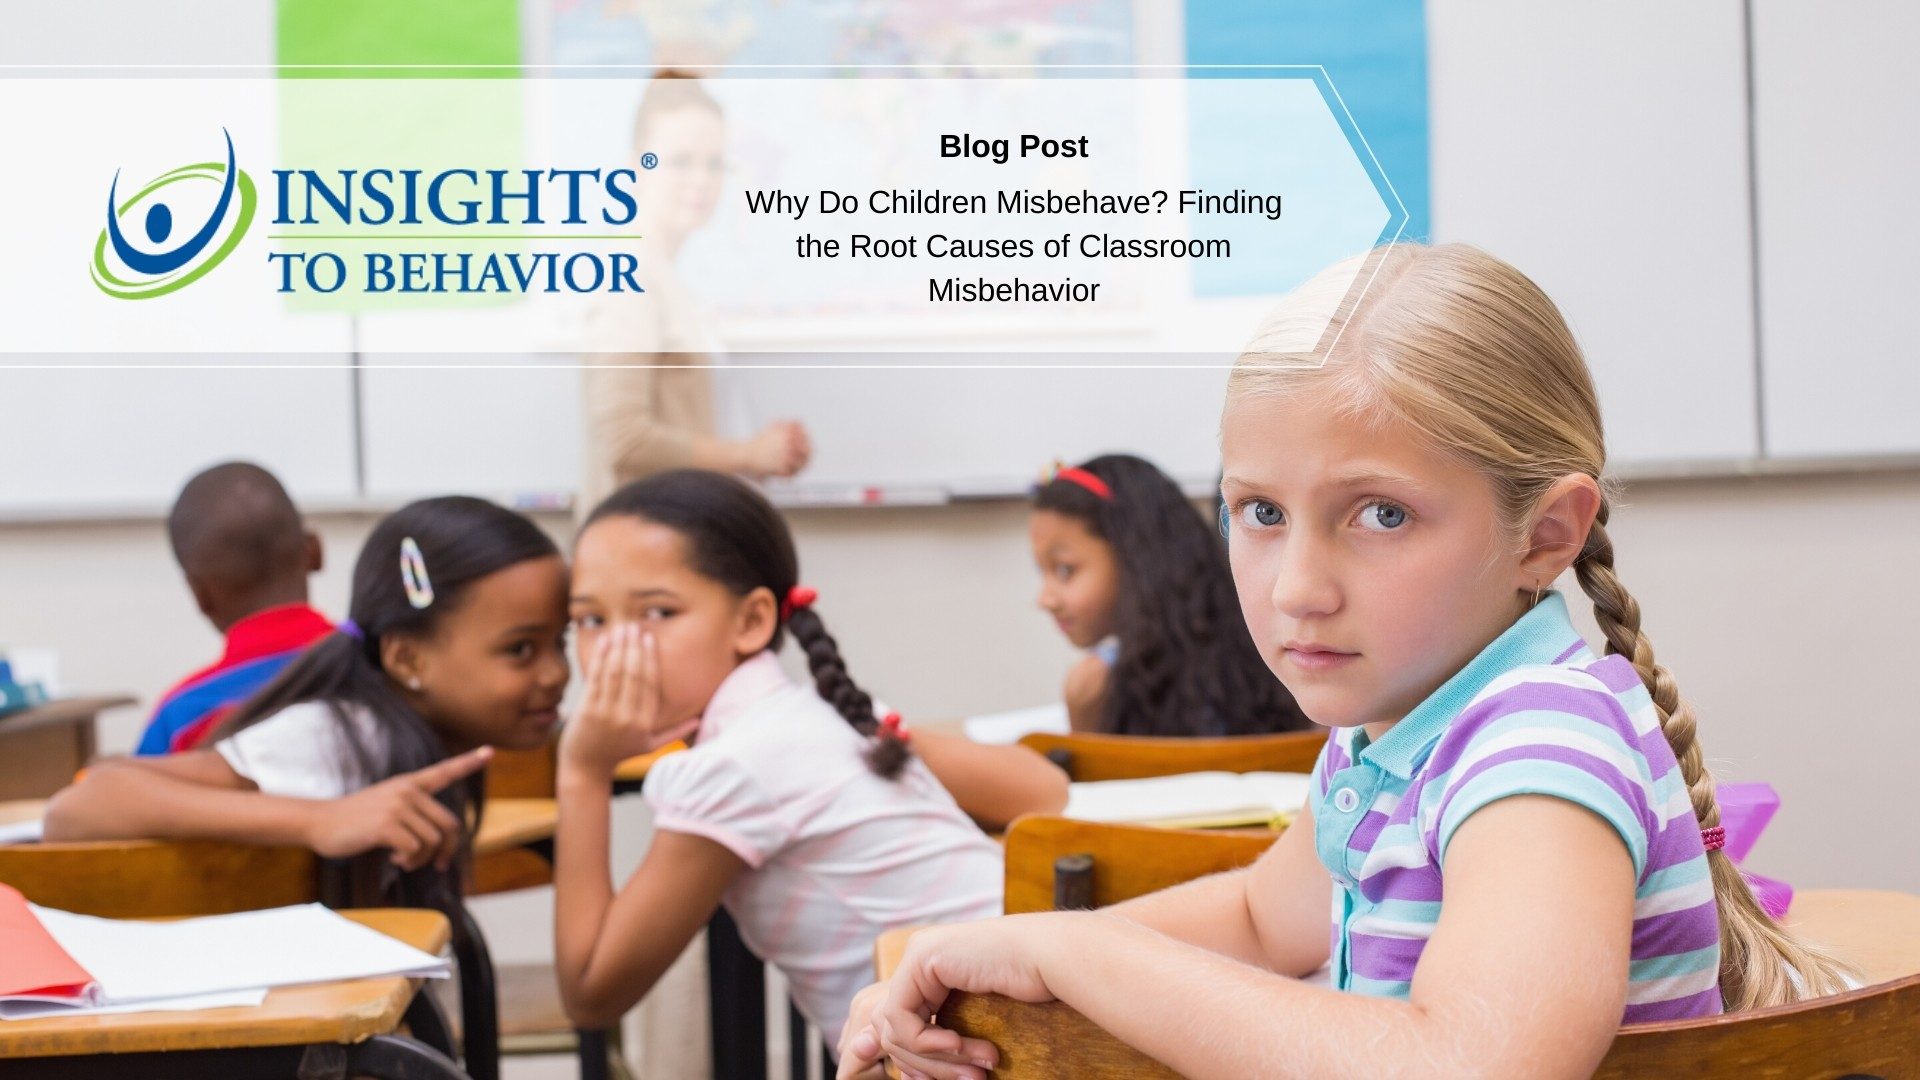 Why do children misbehave? Finding the root causes of childhood behavior.